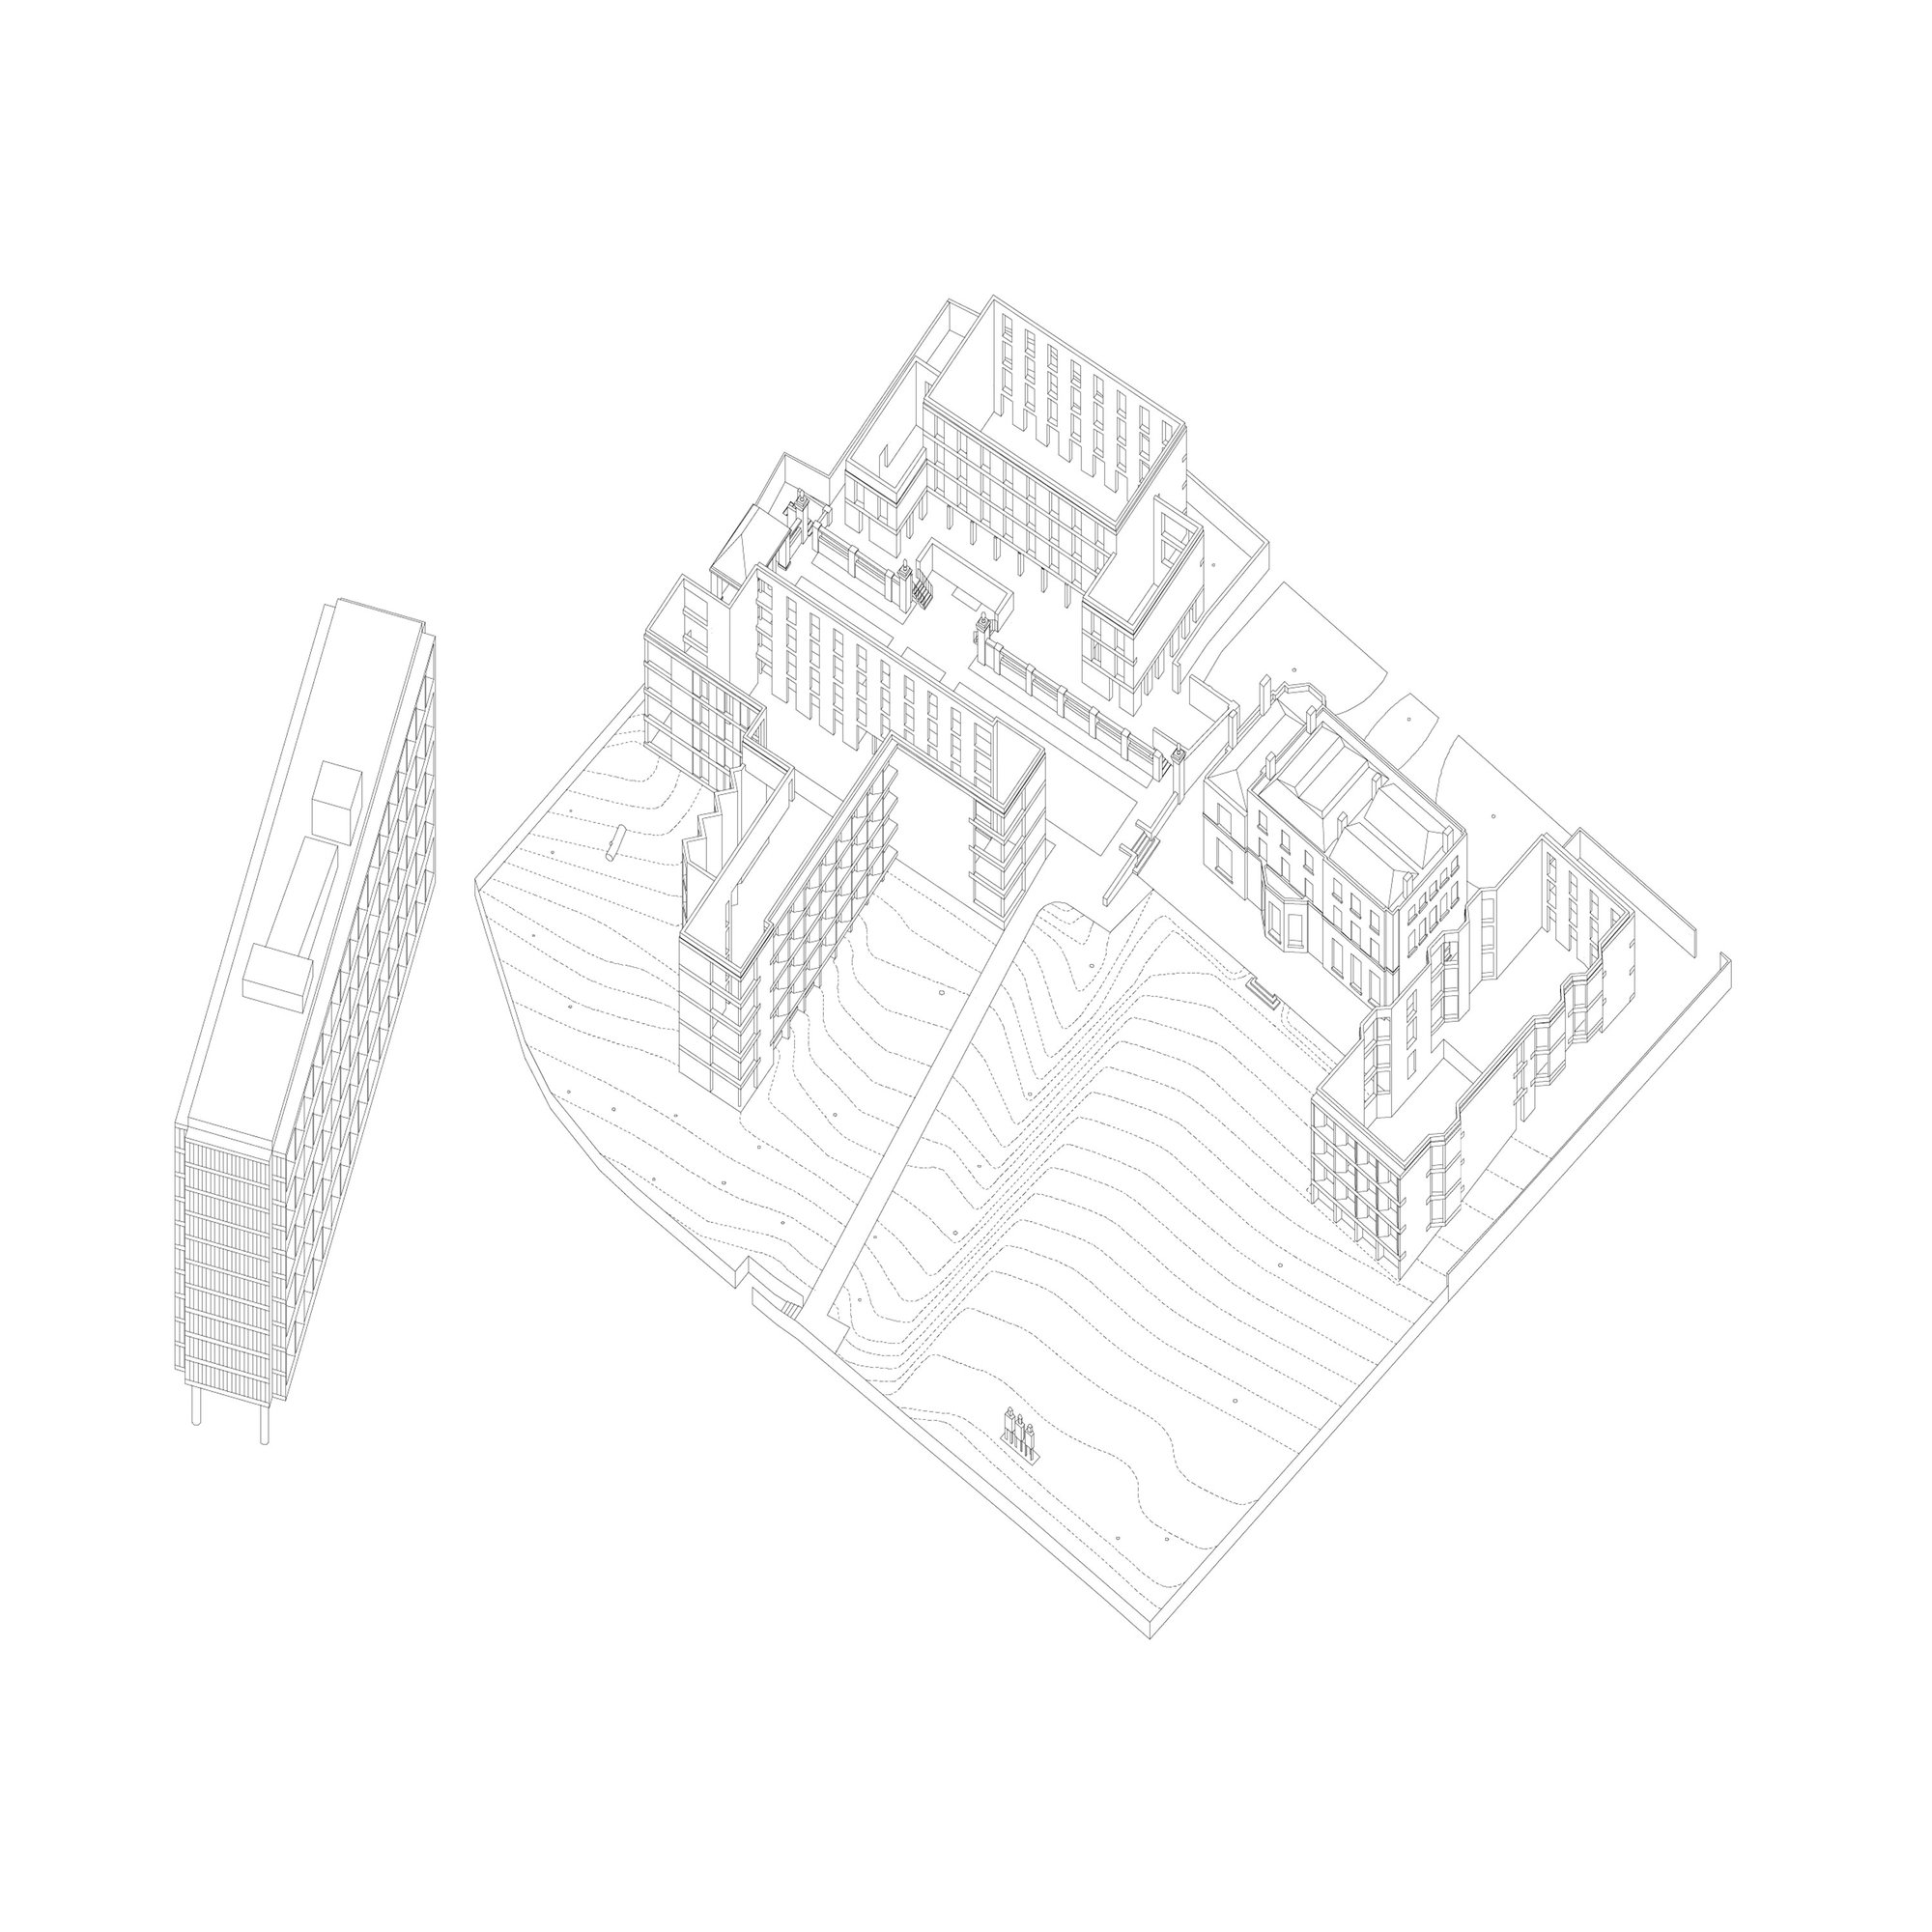 Chadwick_Axonometric_Site.jpg